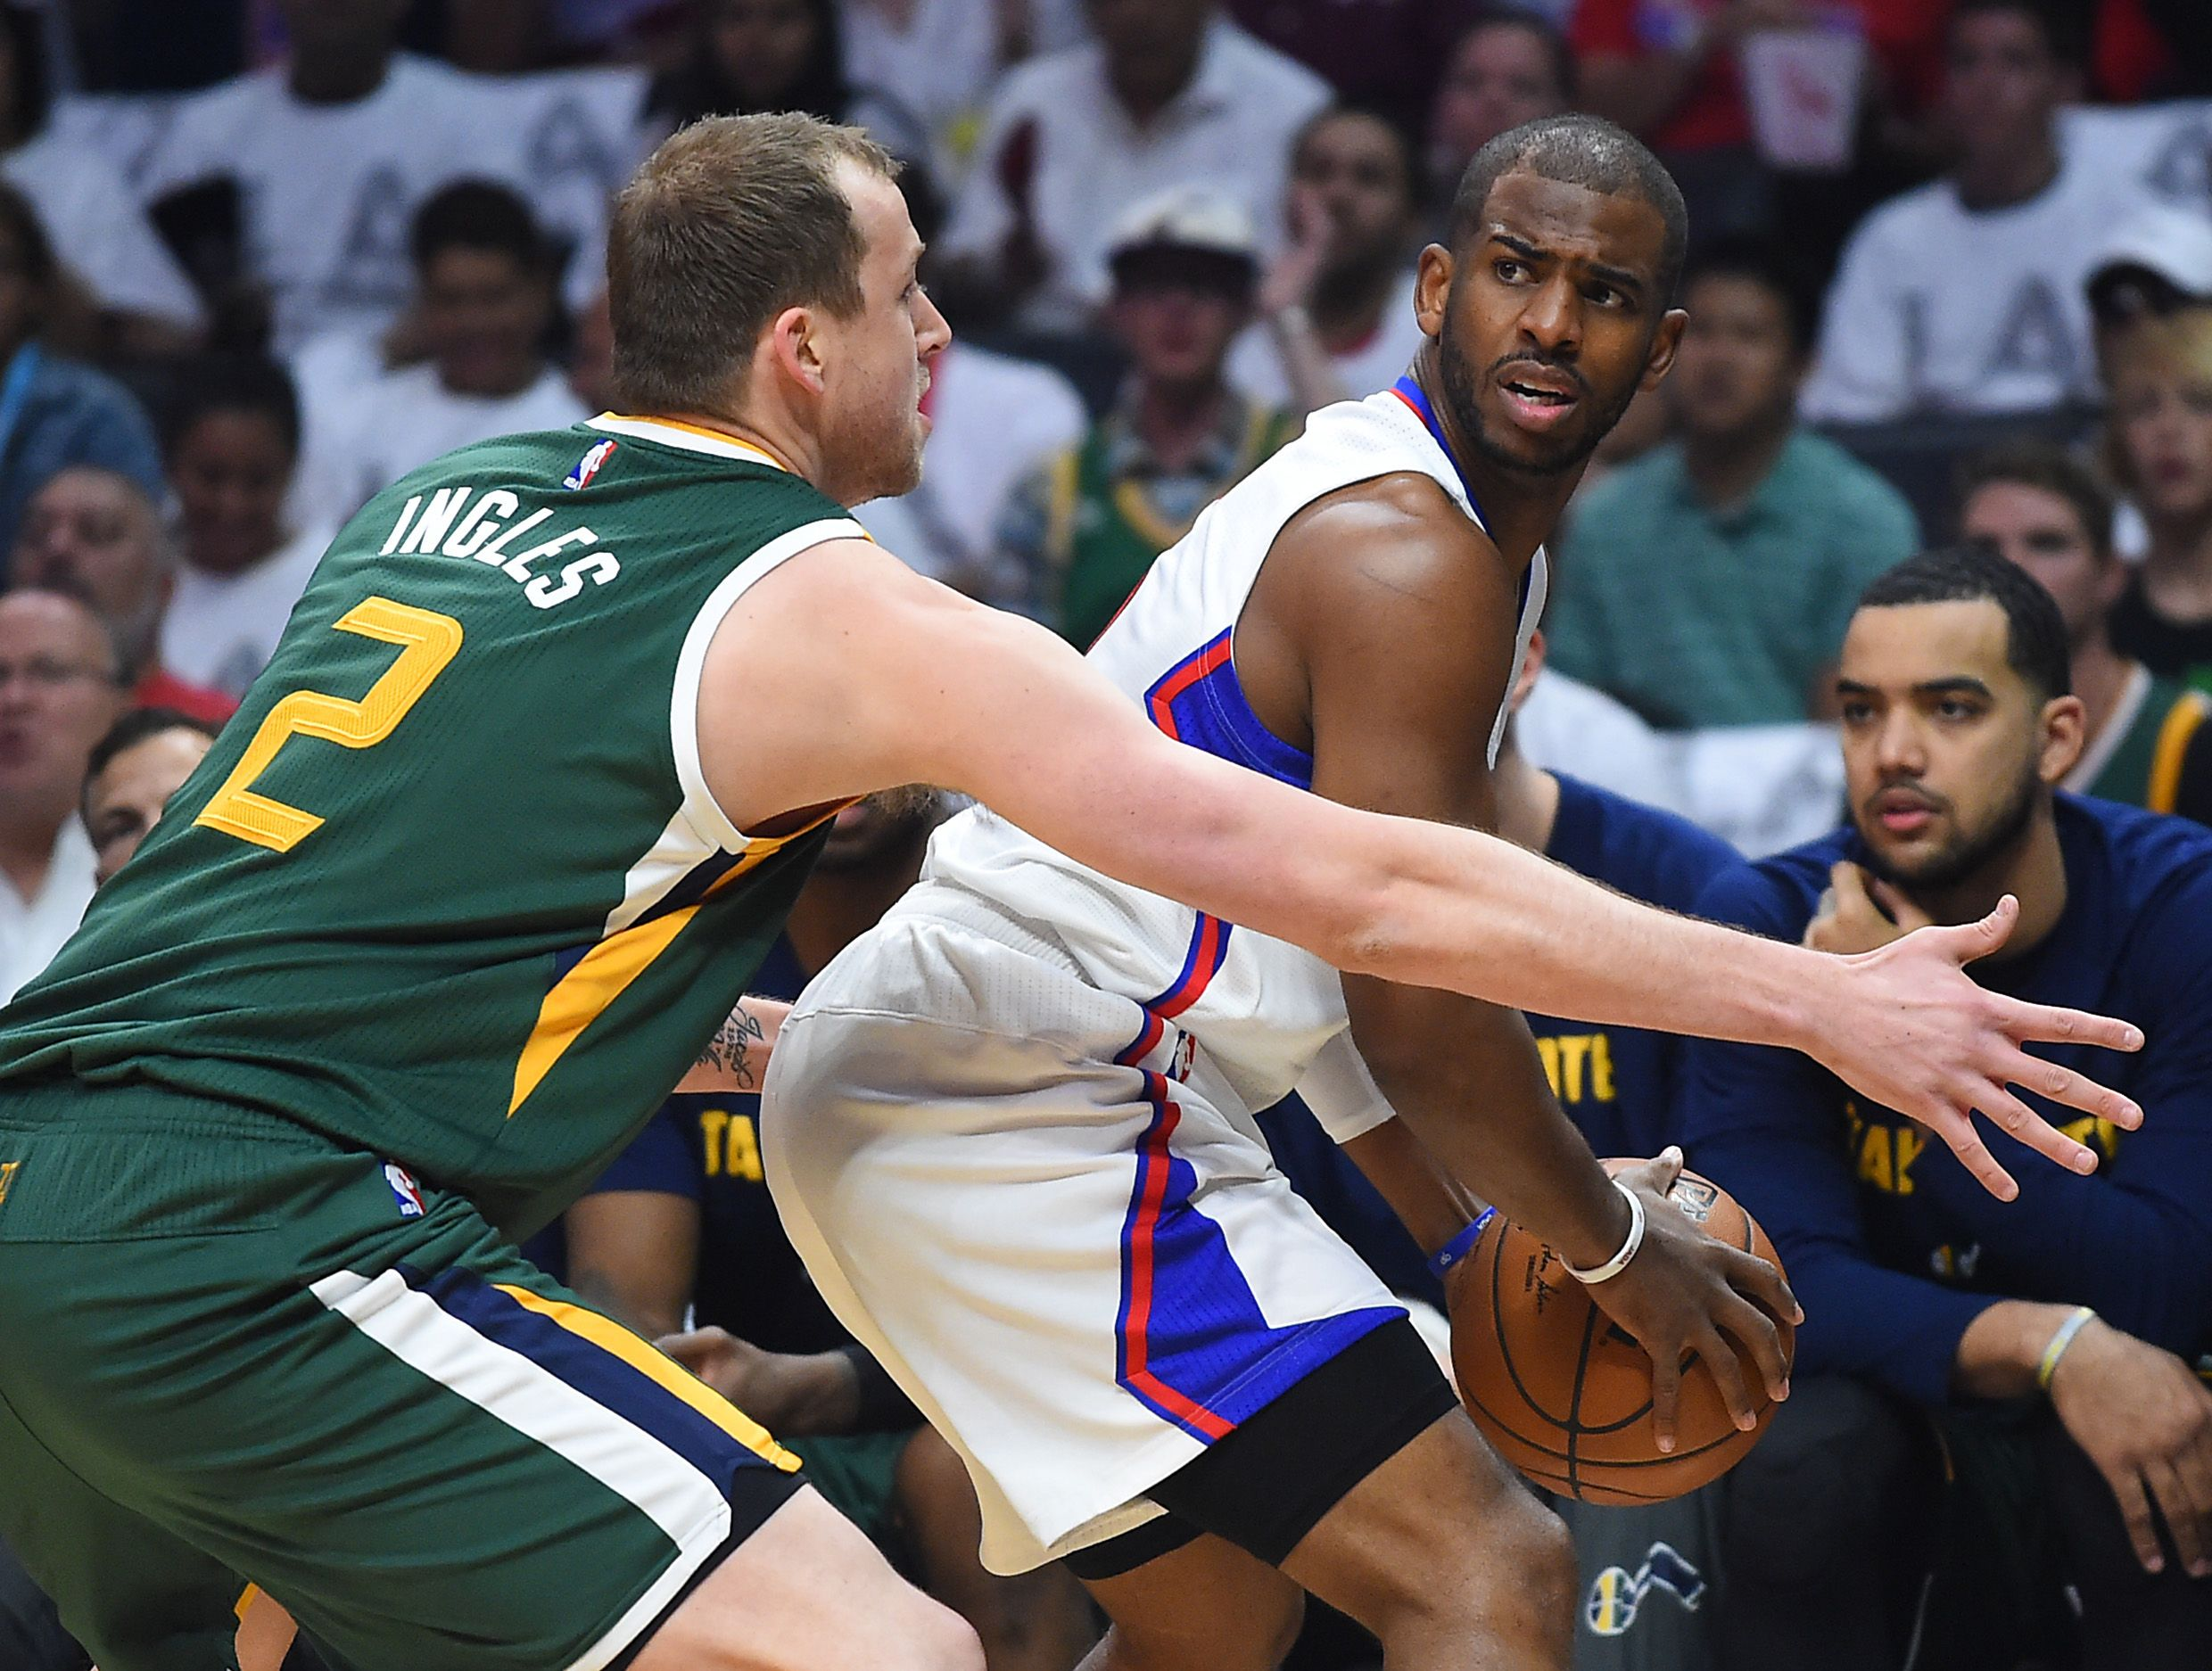 Los Angeles Clippers guard Chris Paul, right, at Staples Center, Los Angeles, April 30.